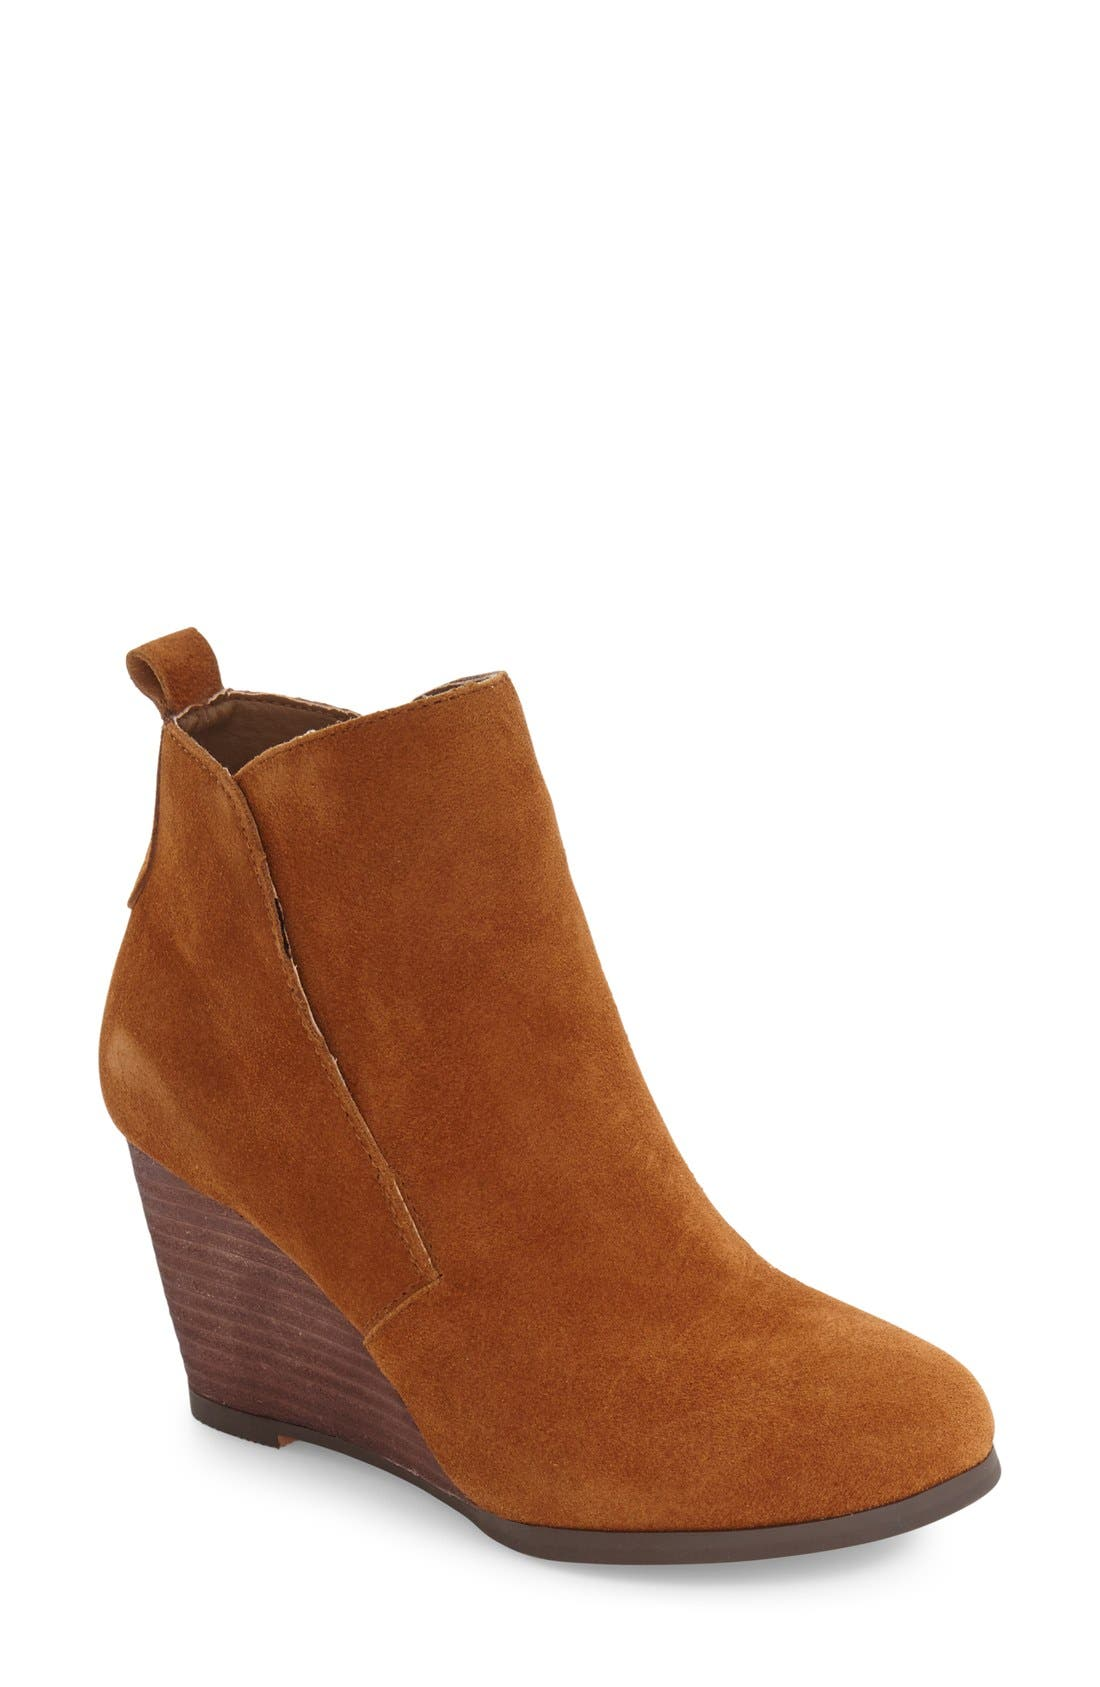 Main Image - Sole Society Brigitte Wedge Bootie (Women)